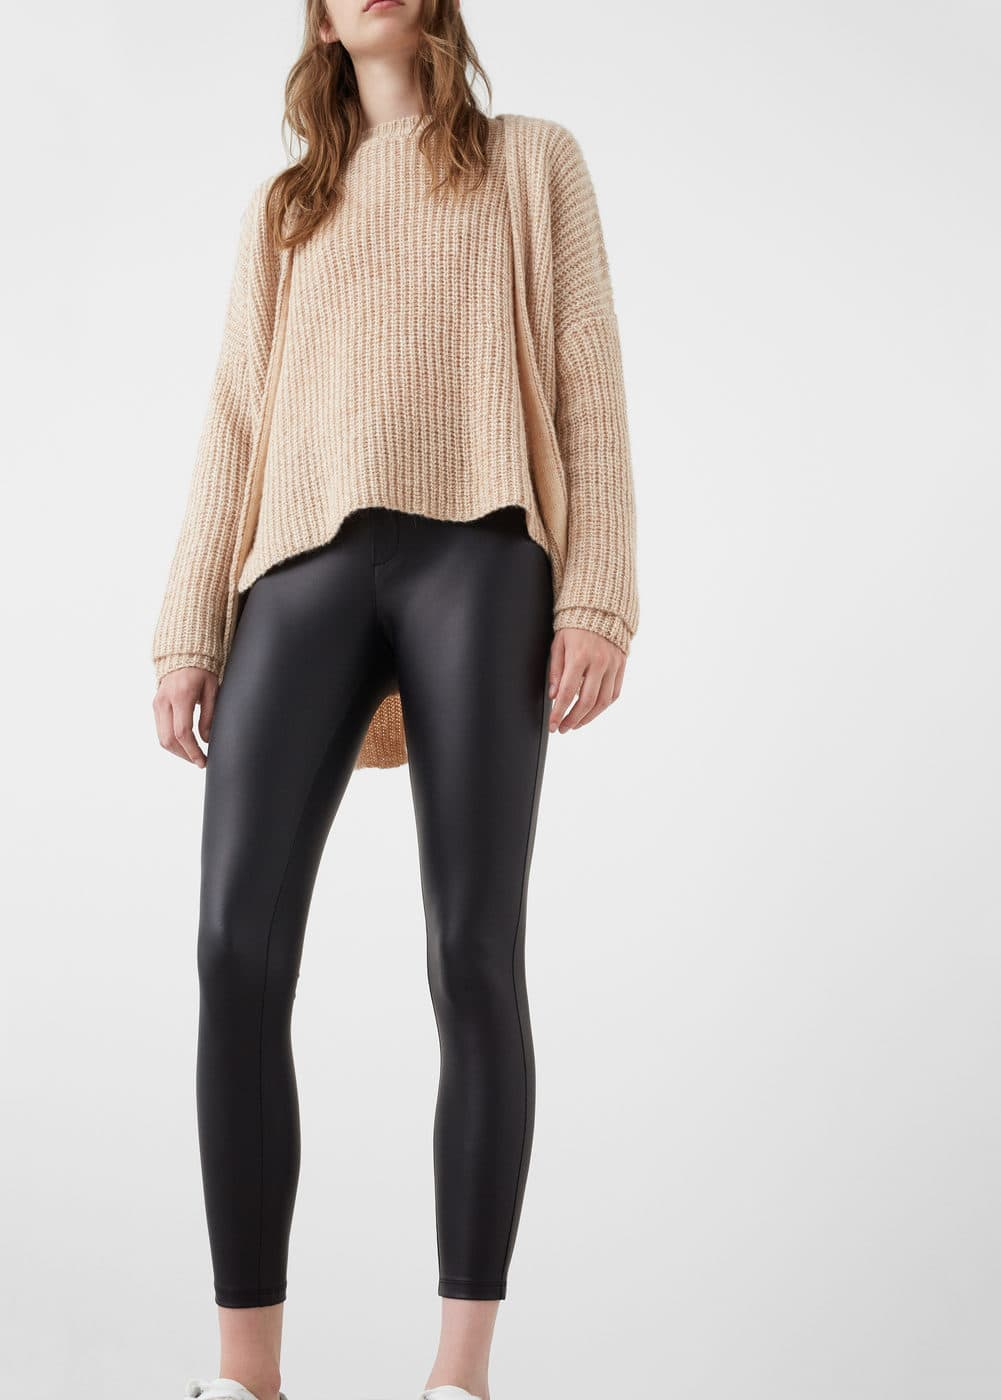 Leggings acabado brillante | MANGO